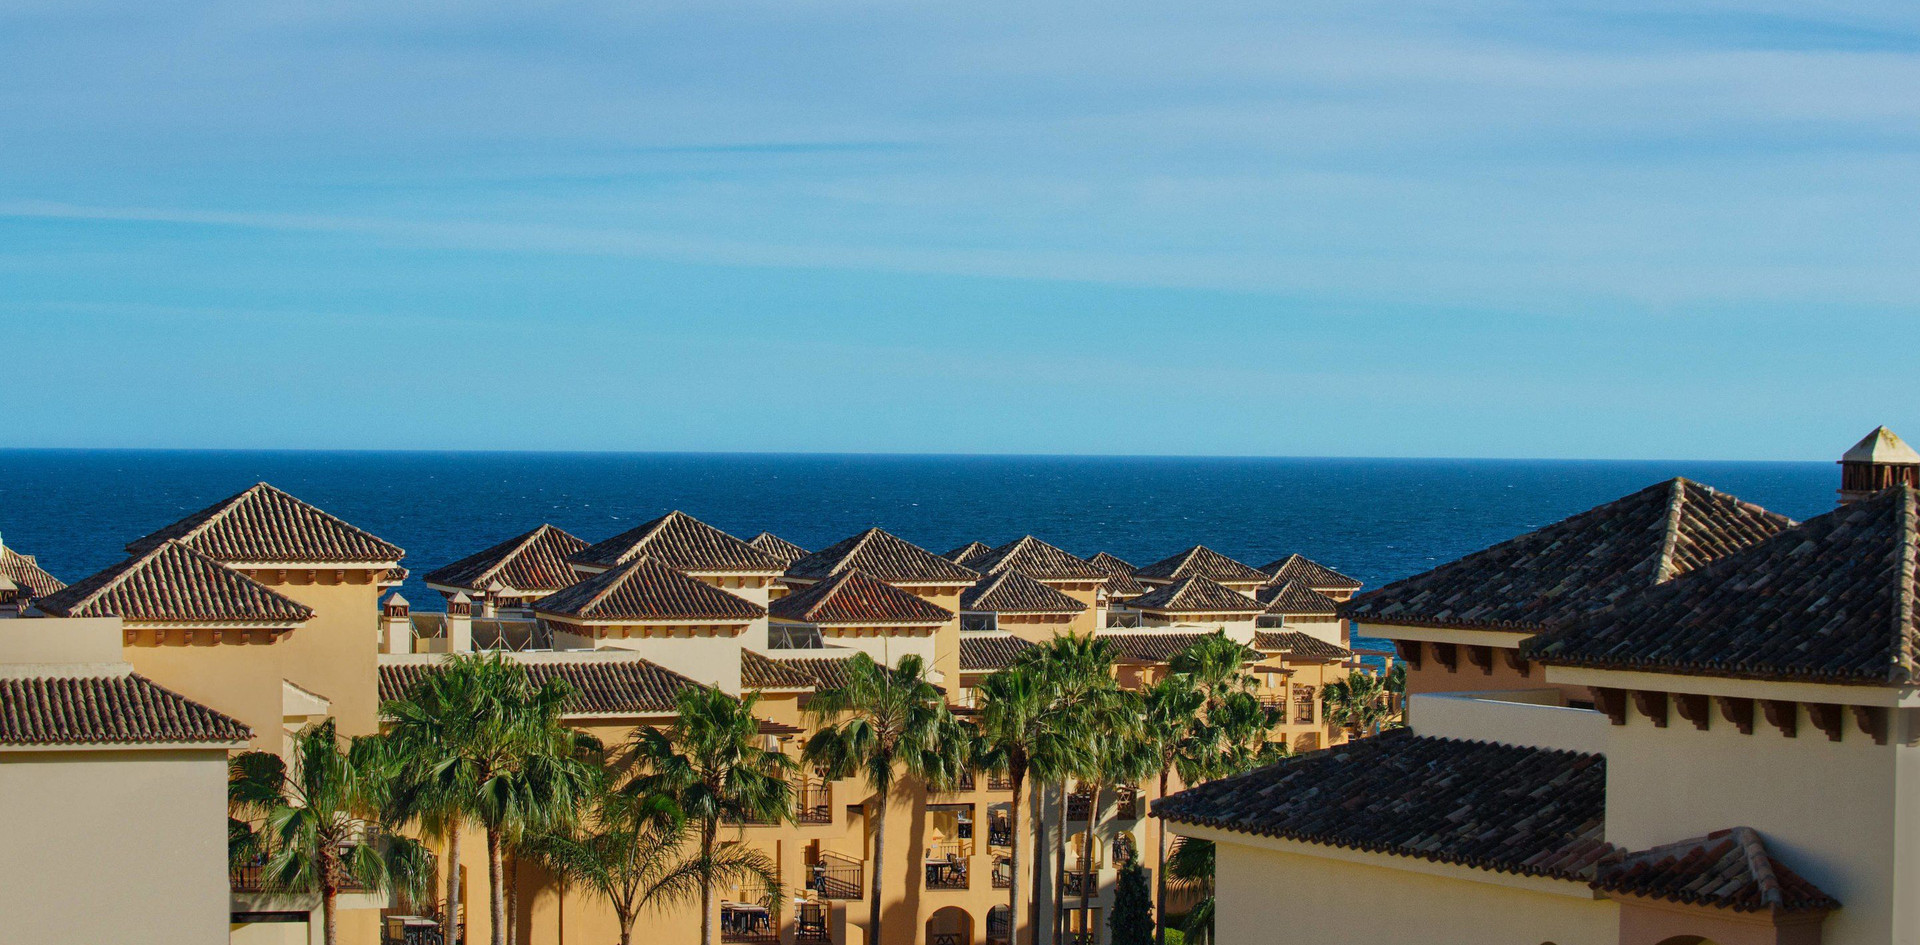 Marriotts Marbella view.jpg